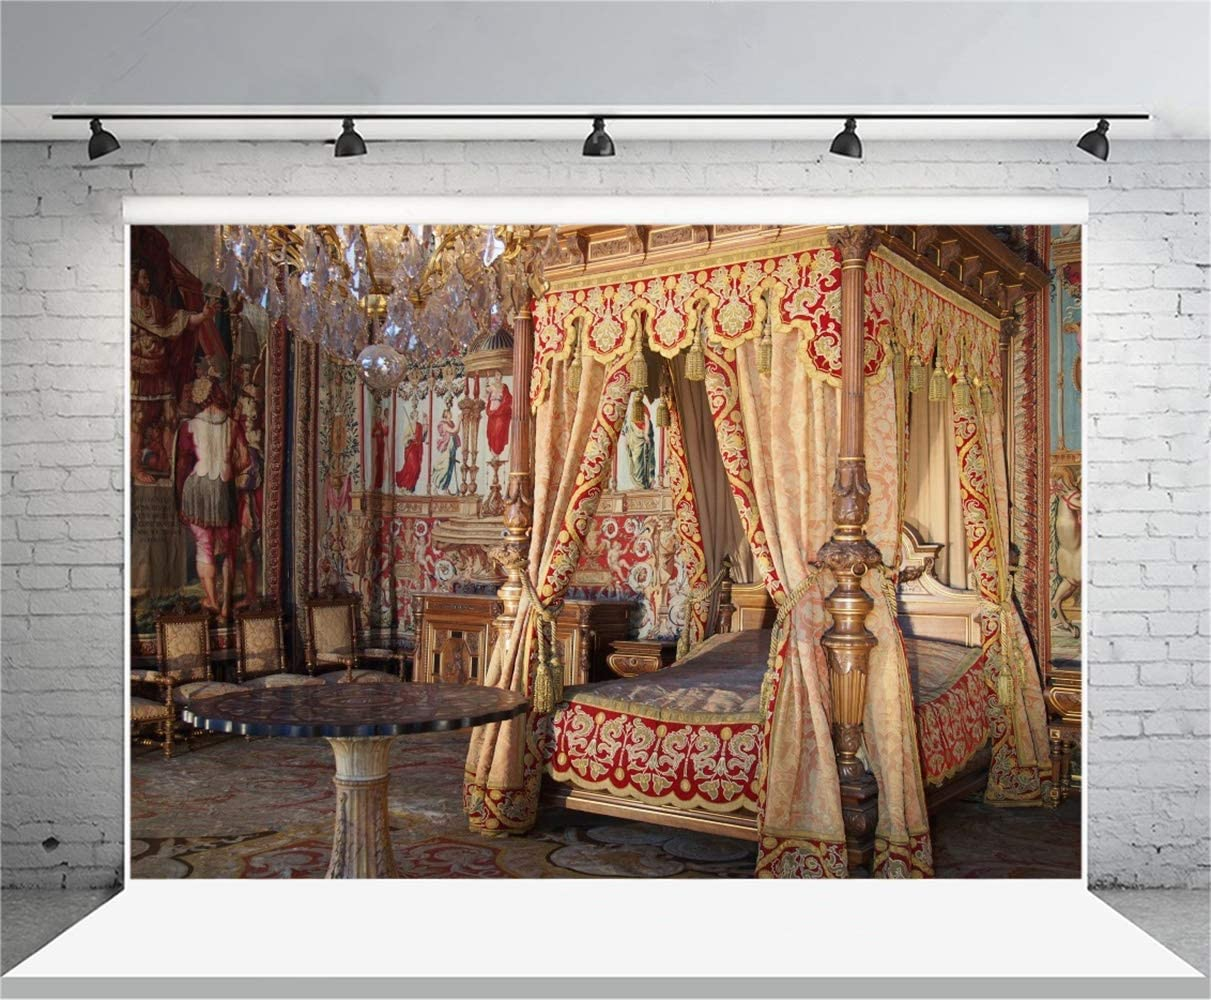 10x6.5ft Palace of Fontainebleau Bedroom Interior Polyester Photography Background Antique Bed Dedicate Wall Painting Vintage Furnitures Backdrop Classical Historical Architecture Inside Studio